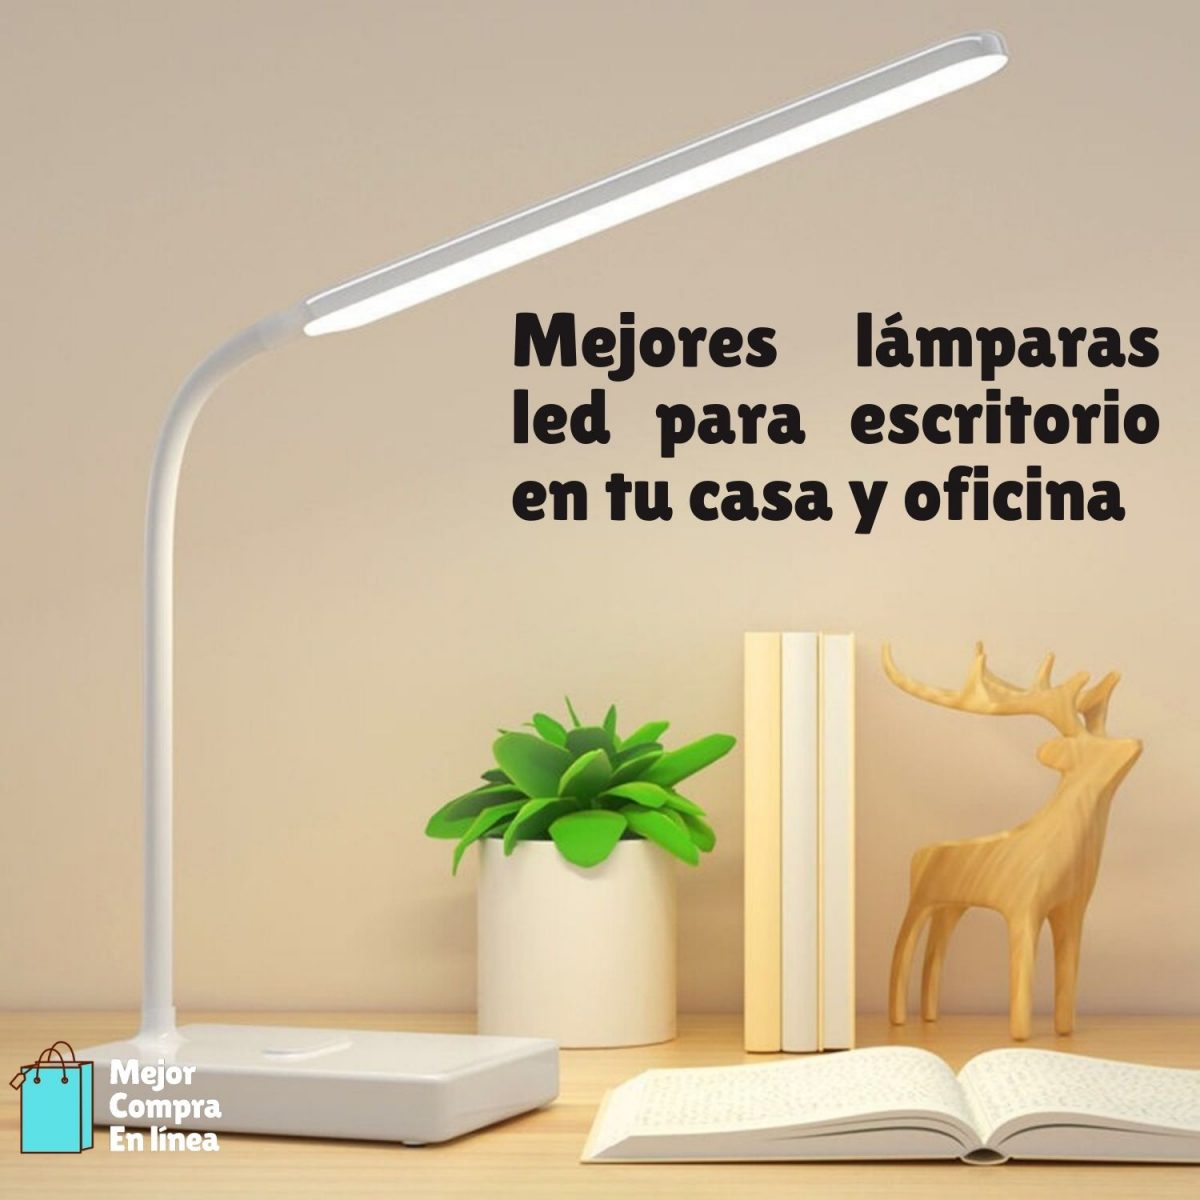 Lamparas LED escritorio y oficina